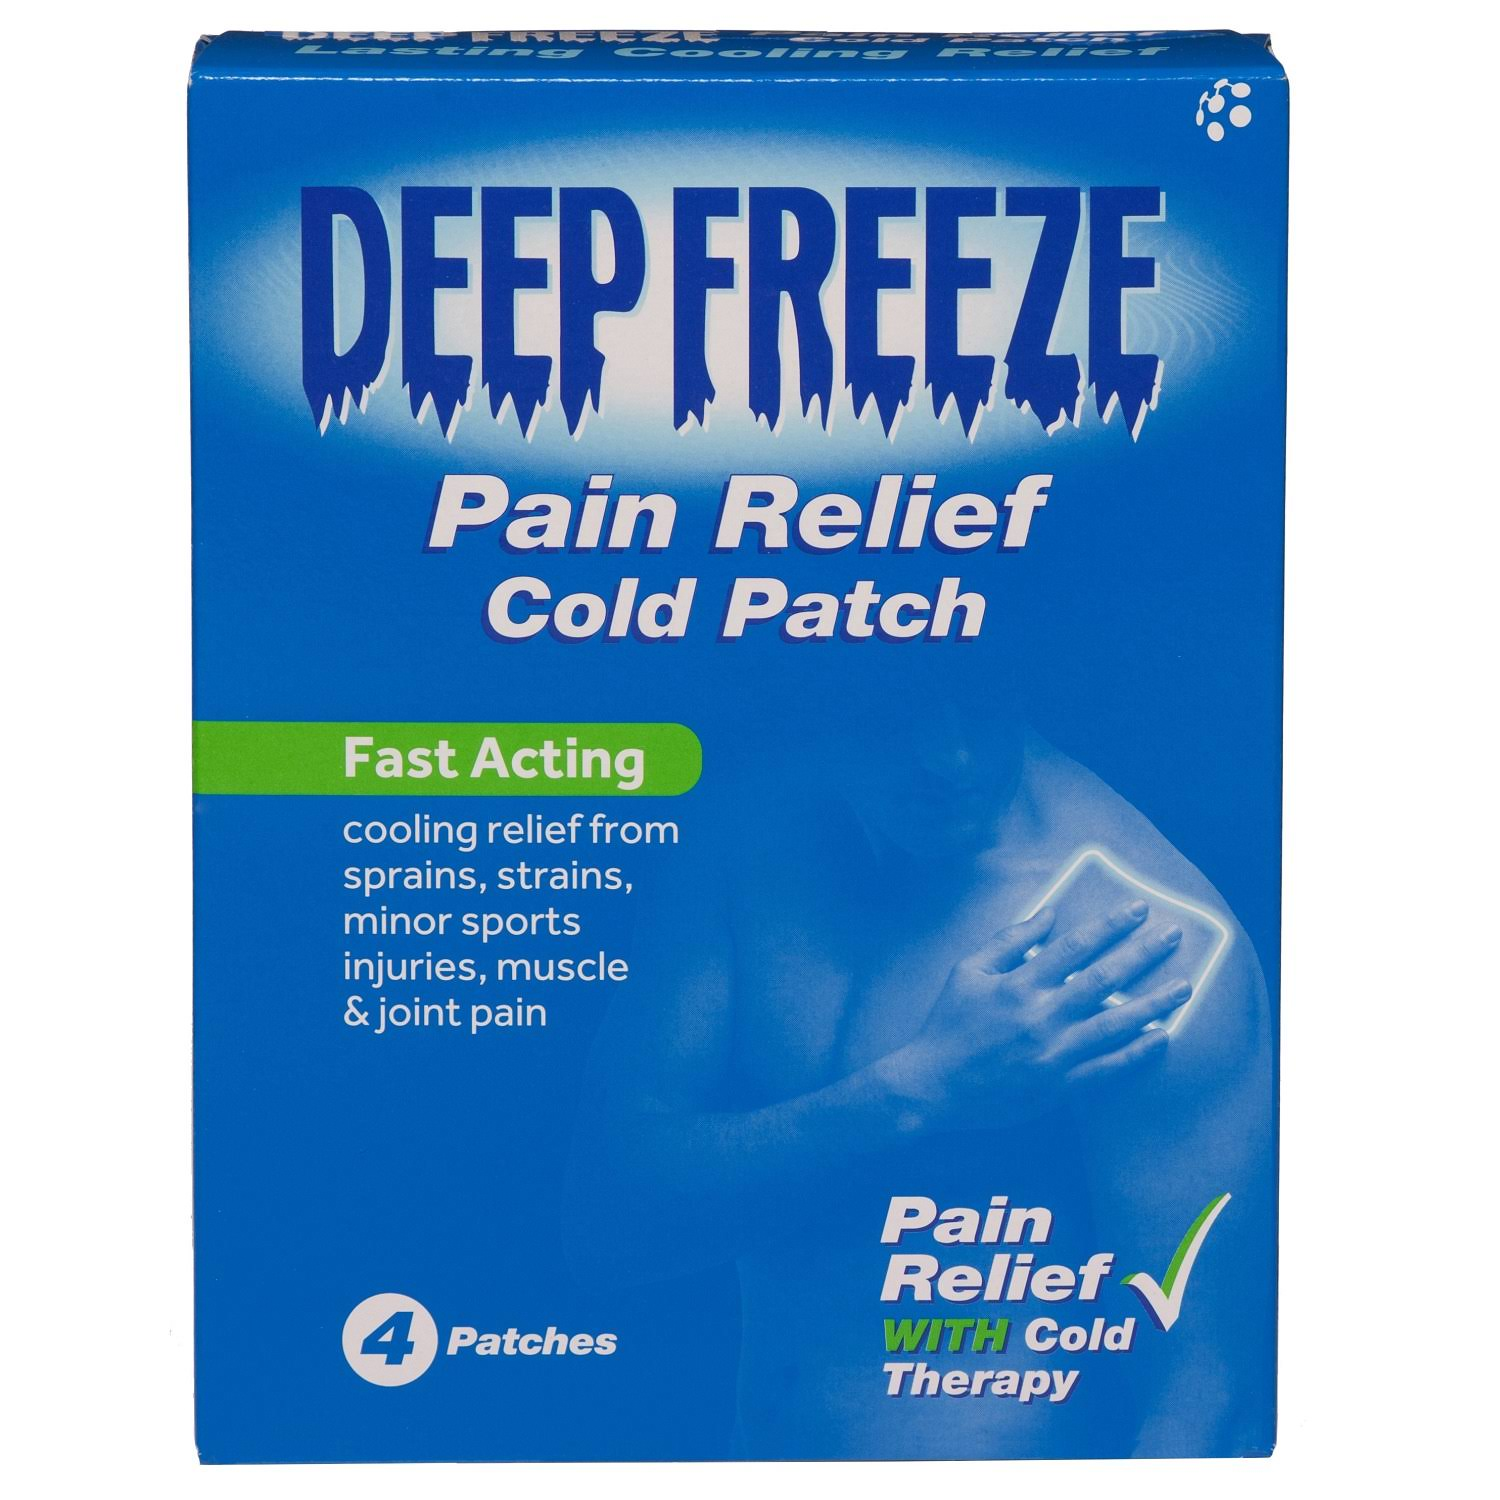 Deep Freeze Pain Relief Cold Patch - 4 Patches